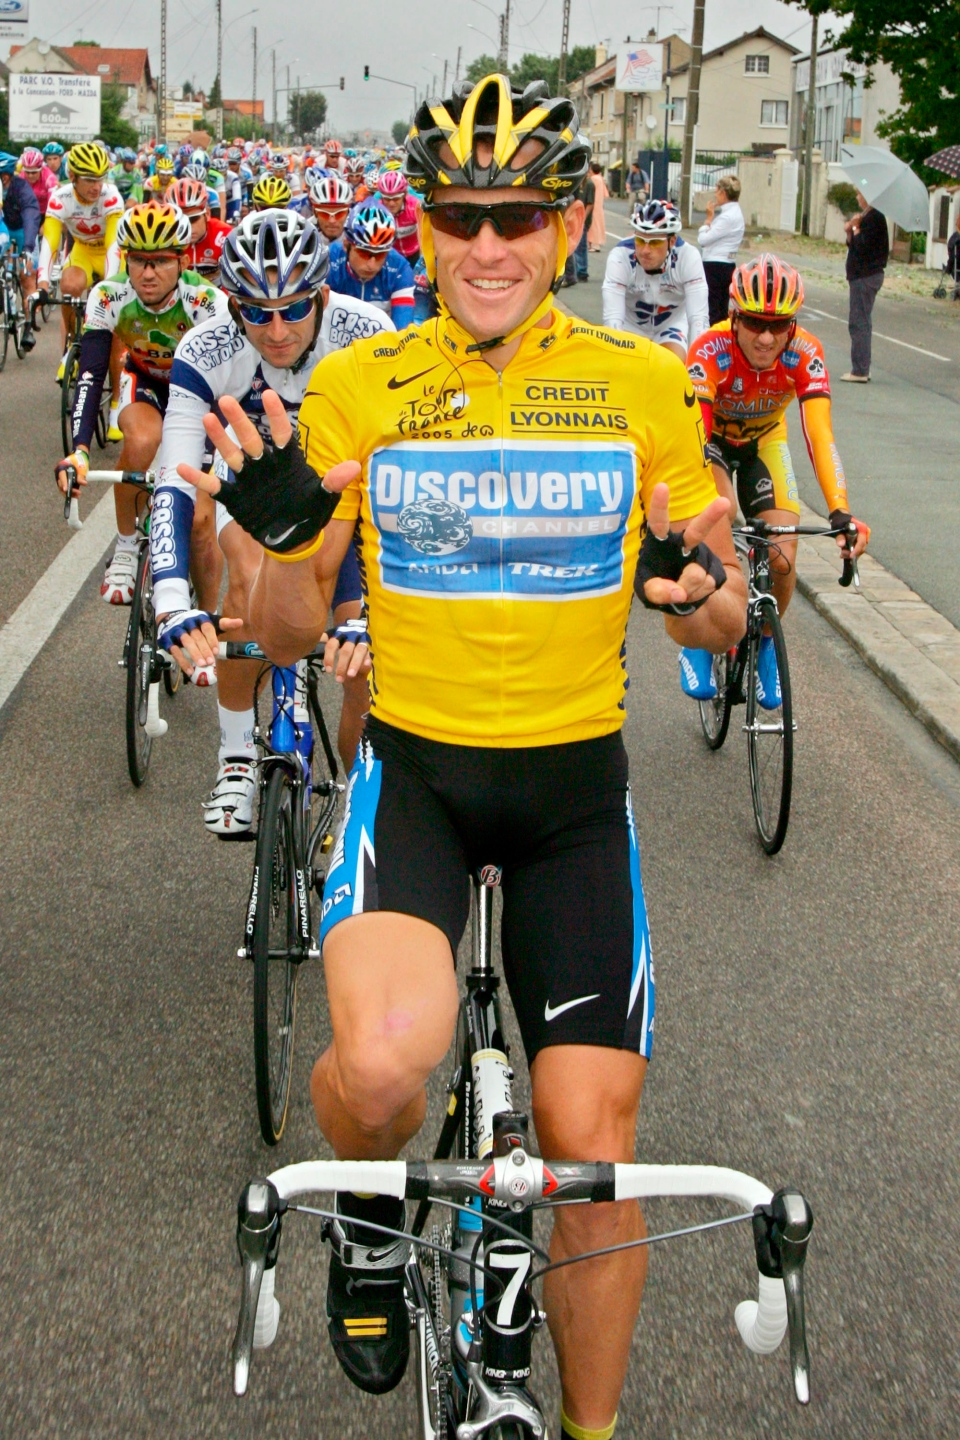 Lance Armstrong signals seven for his seventh straight win in the Tour de France cycling race as he pedals during the 21st and final stage of the race between Corbeil-Essonnes, south of Paris, in 2005. By admitting to Oprah Winfrey that he doped during his professional cycling career, Lance Armstrong potentially opened himself up to a stream of litigation that could hurt his pocketbook for years to come. (AP / Peter Dejong)